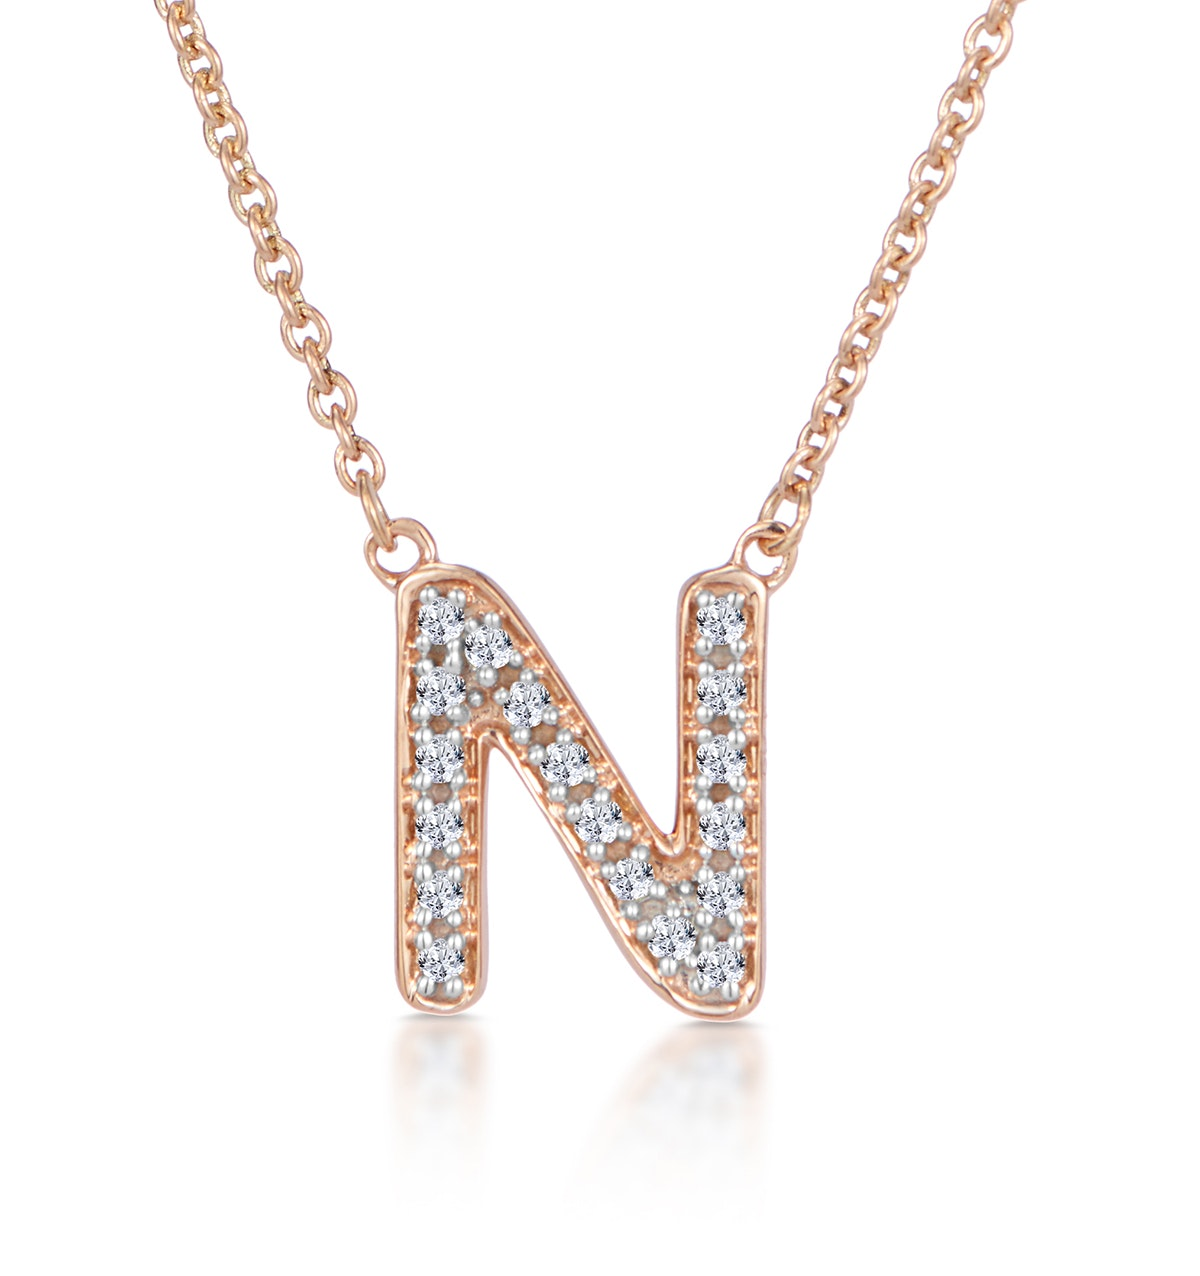 Initial 'N' Necklace Diamond Encrusted Pave Set in 9K Rose Gold